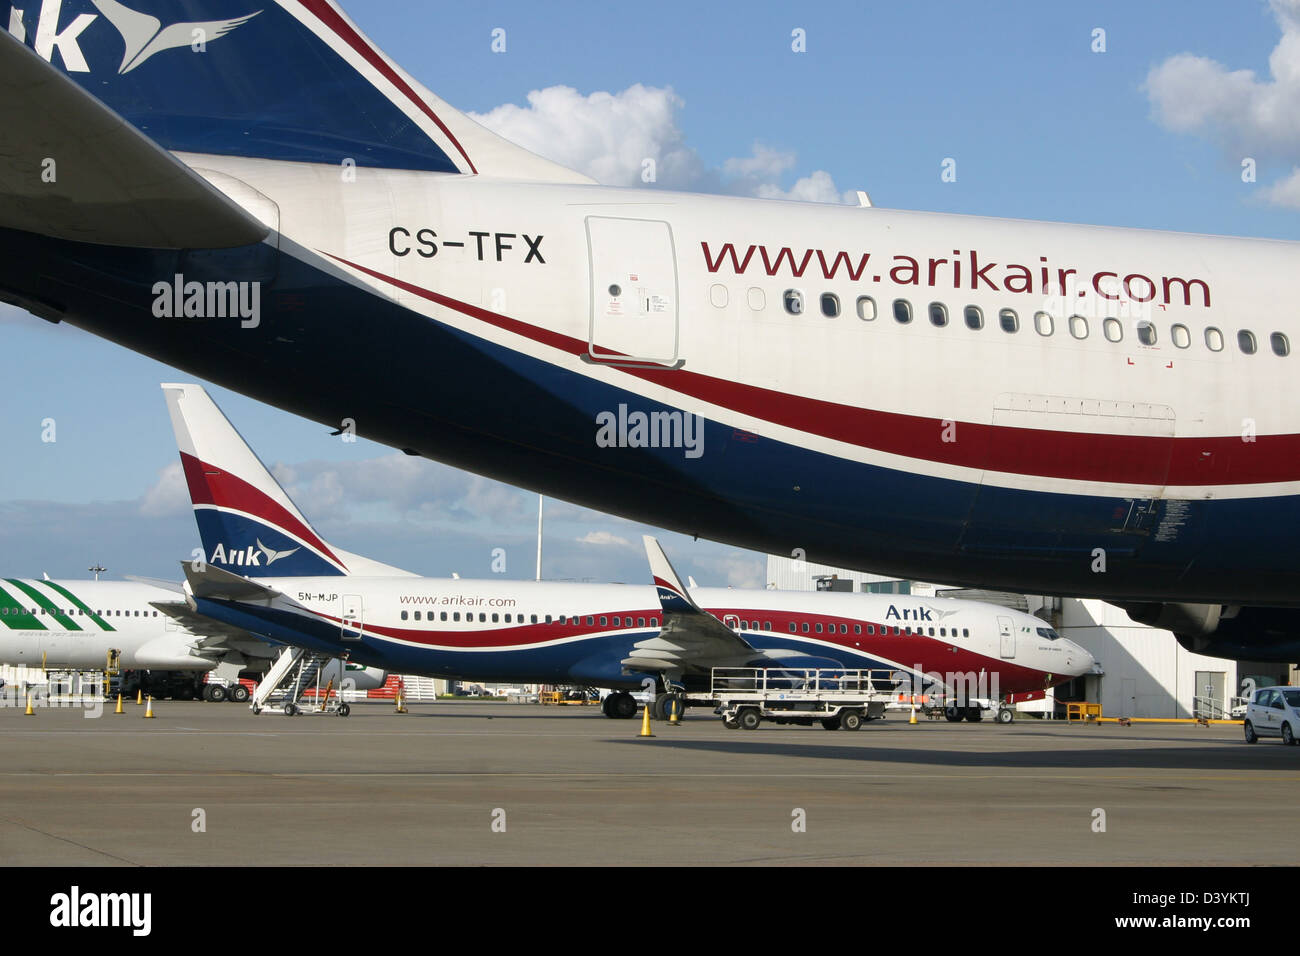 ARIK AIRWAYS AIRLINES NIGERIA - Stock Image